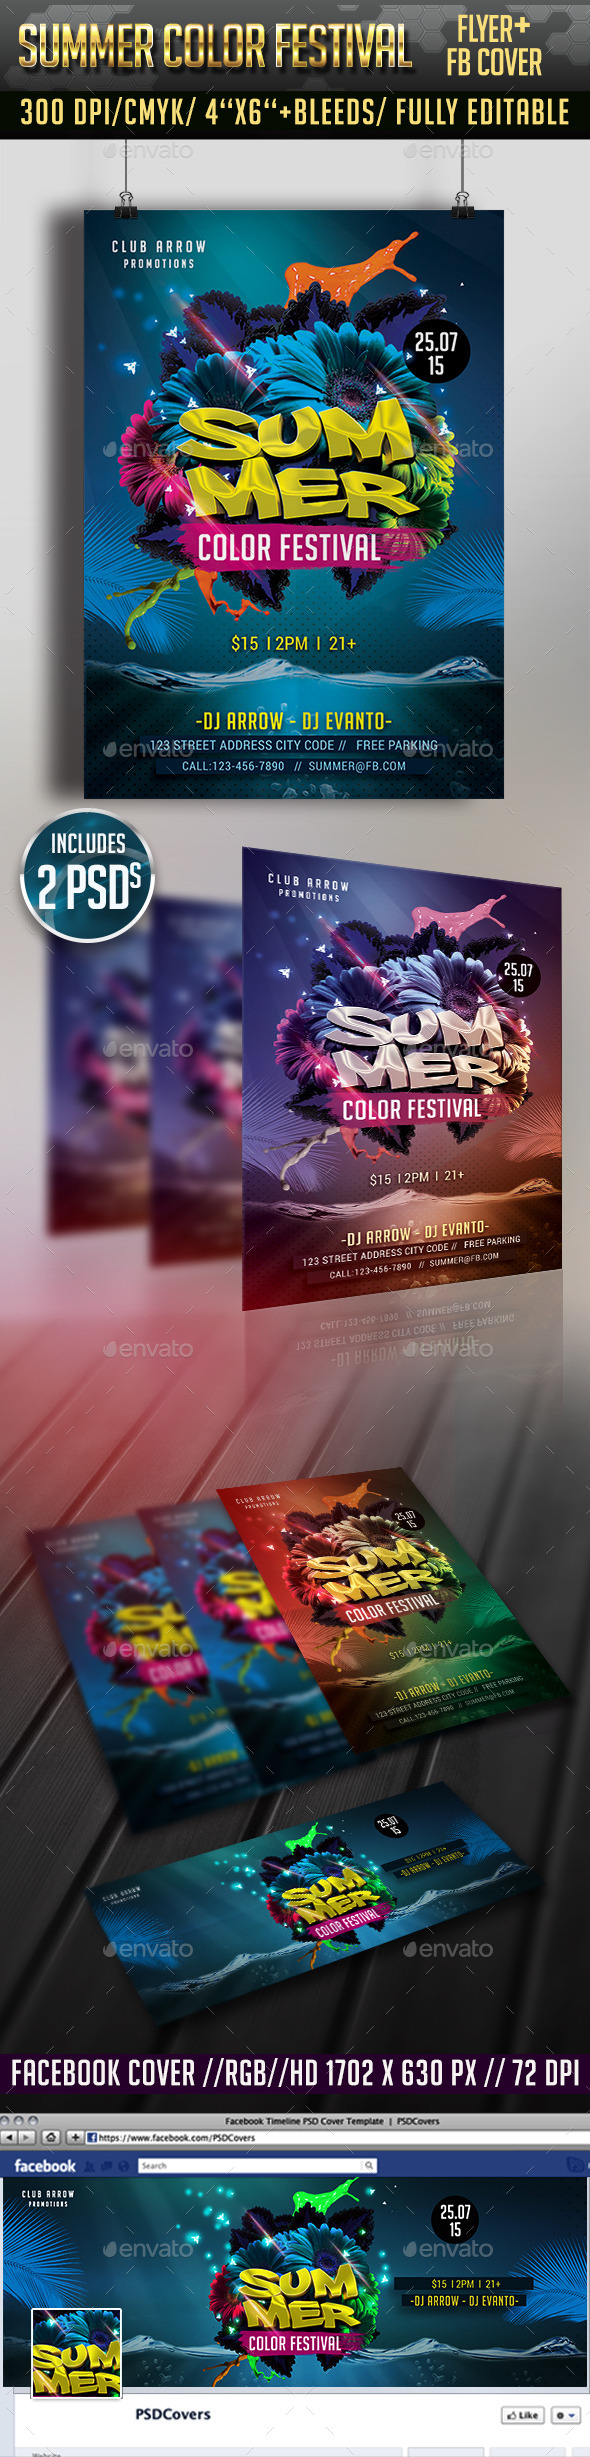 Summer Color Festival Flyer + Facebook Cover - Clubs & Parties Events